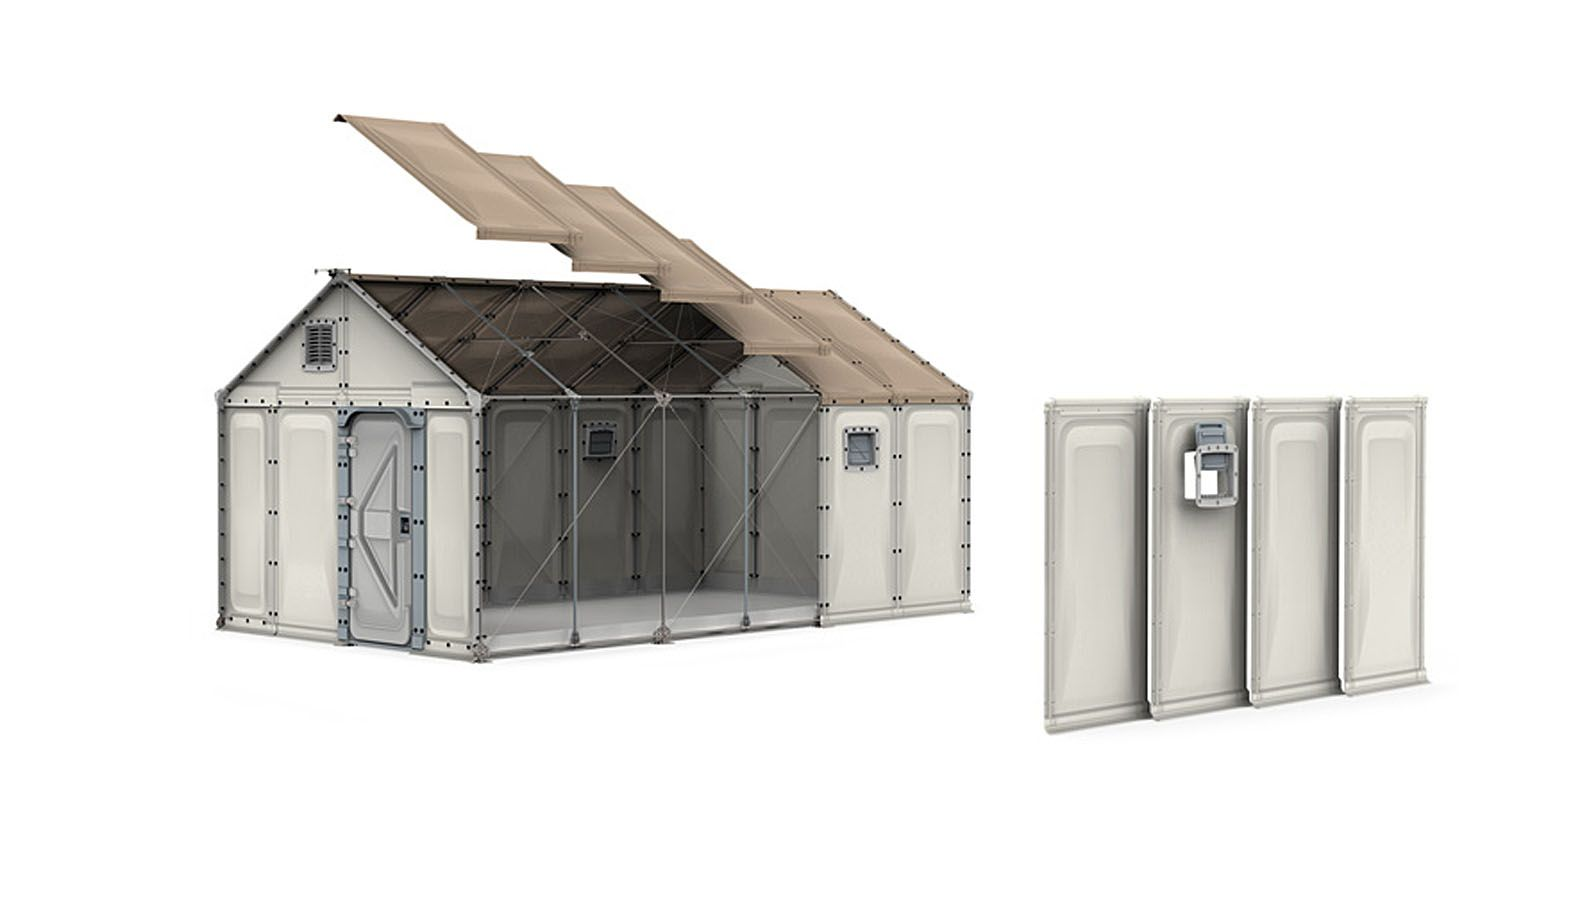 Ikea 39 s modular better shelter housing unit is a solar Shelter house plans